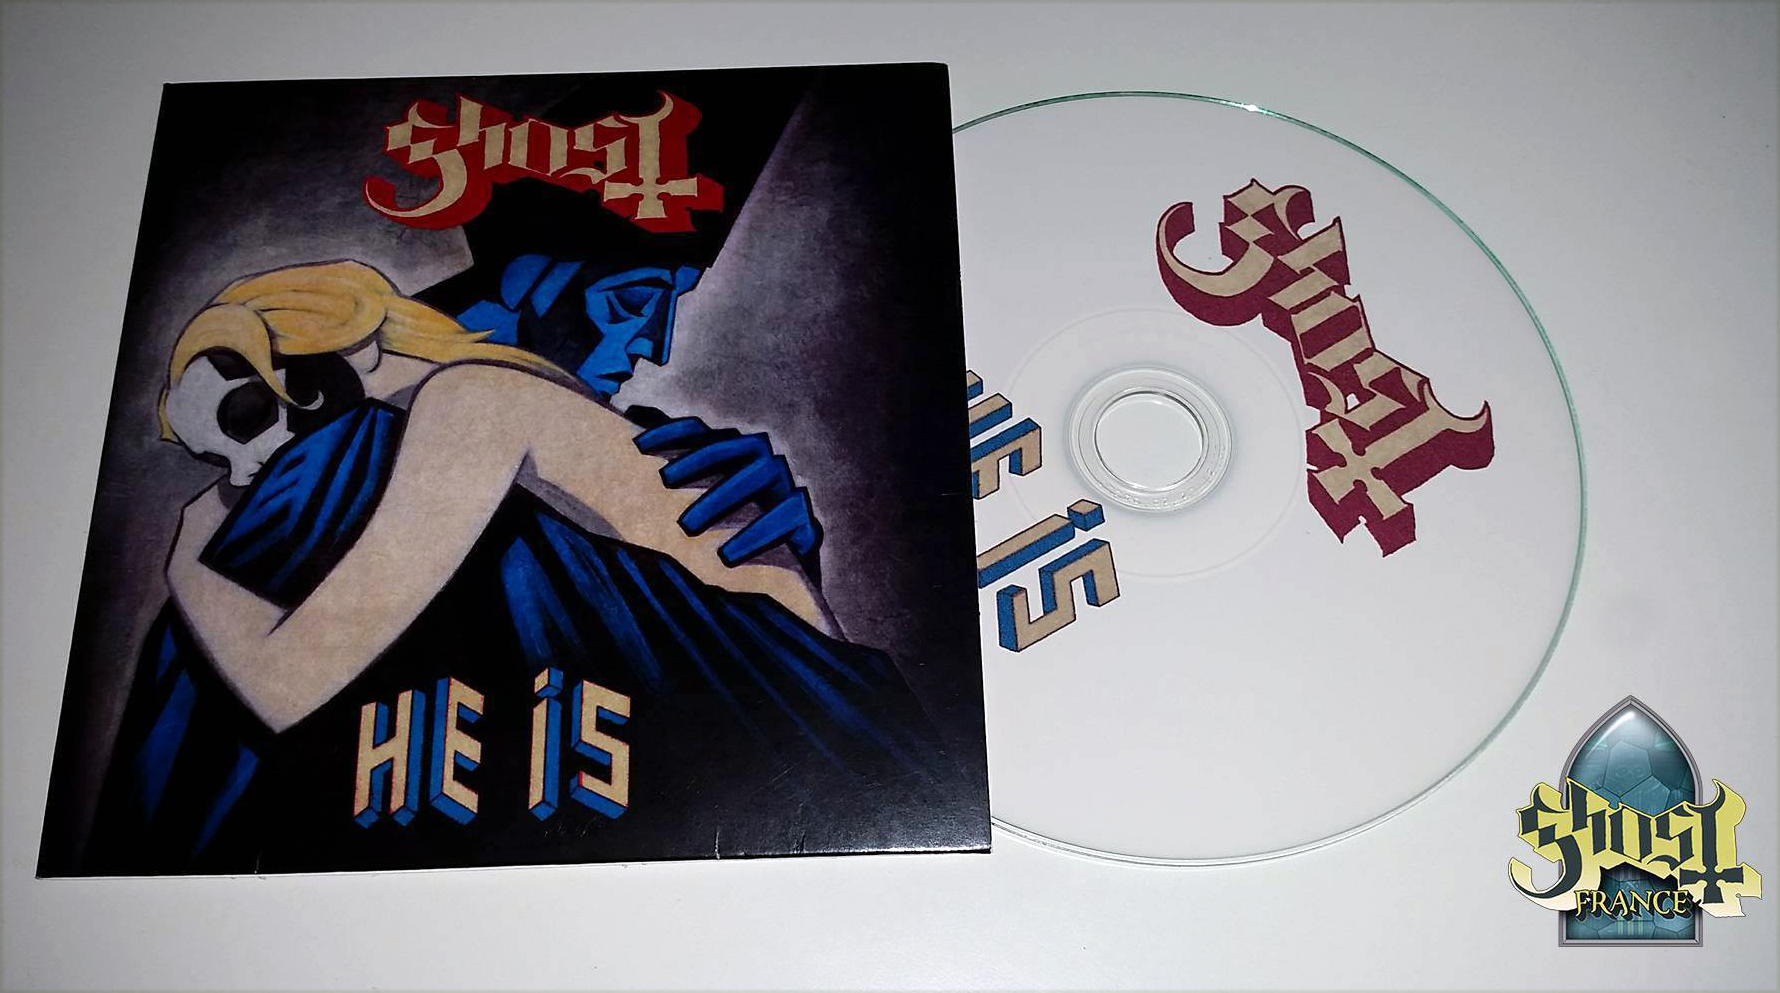 GHOST | HE IS CD promo (France)